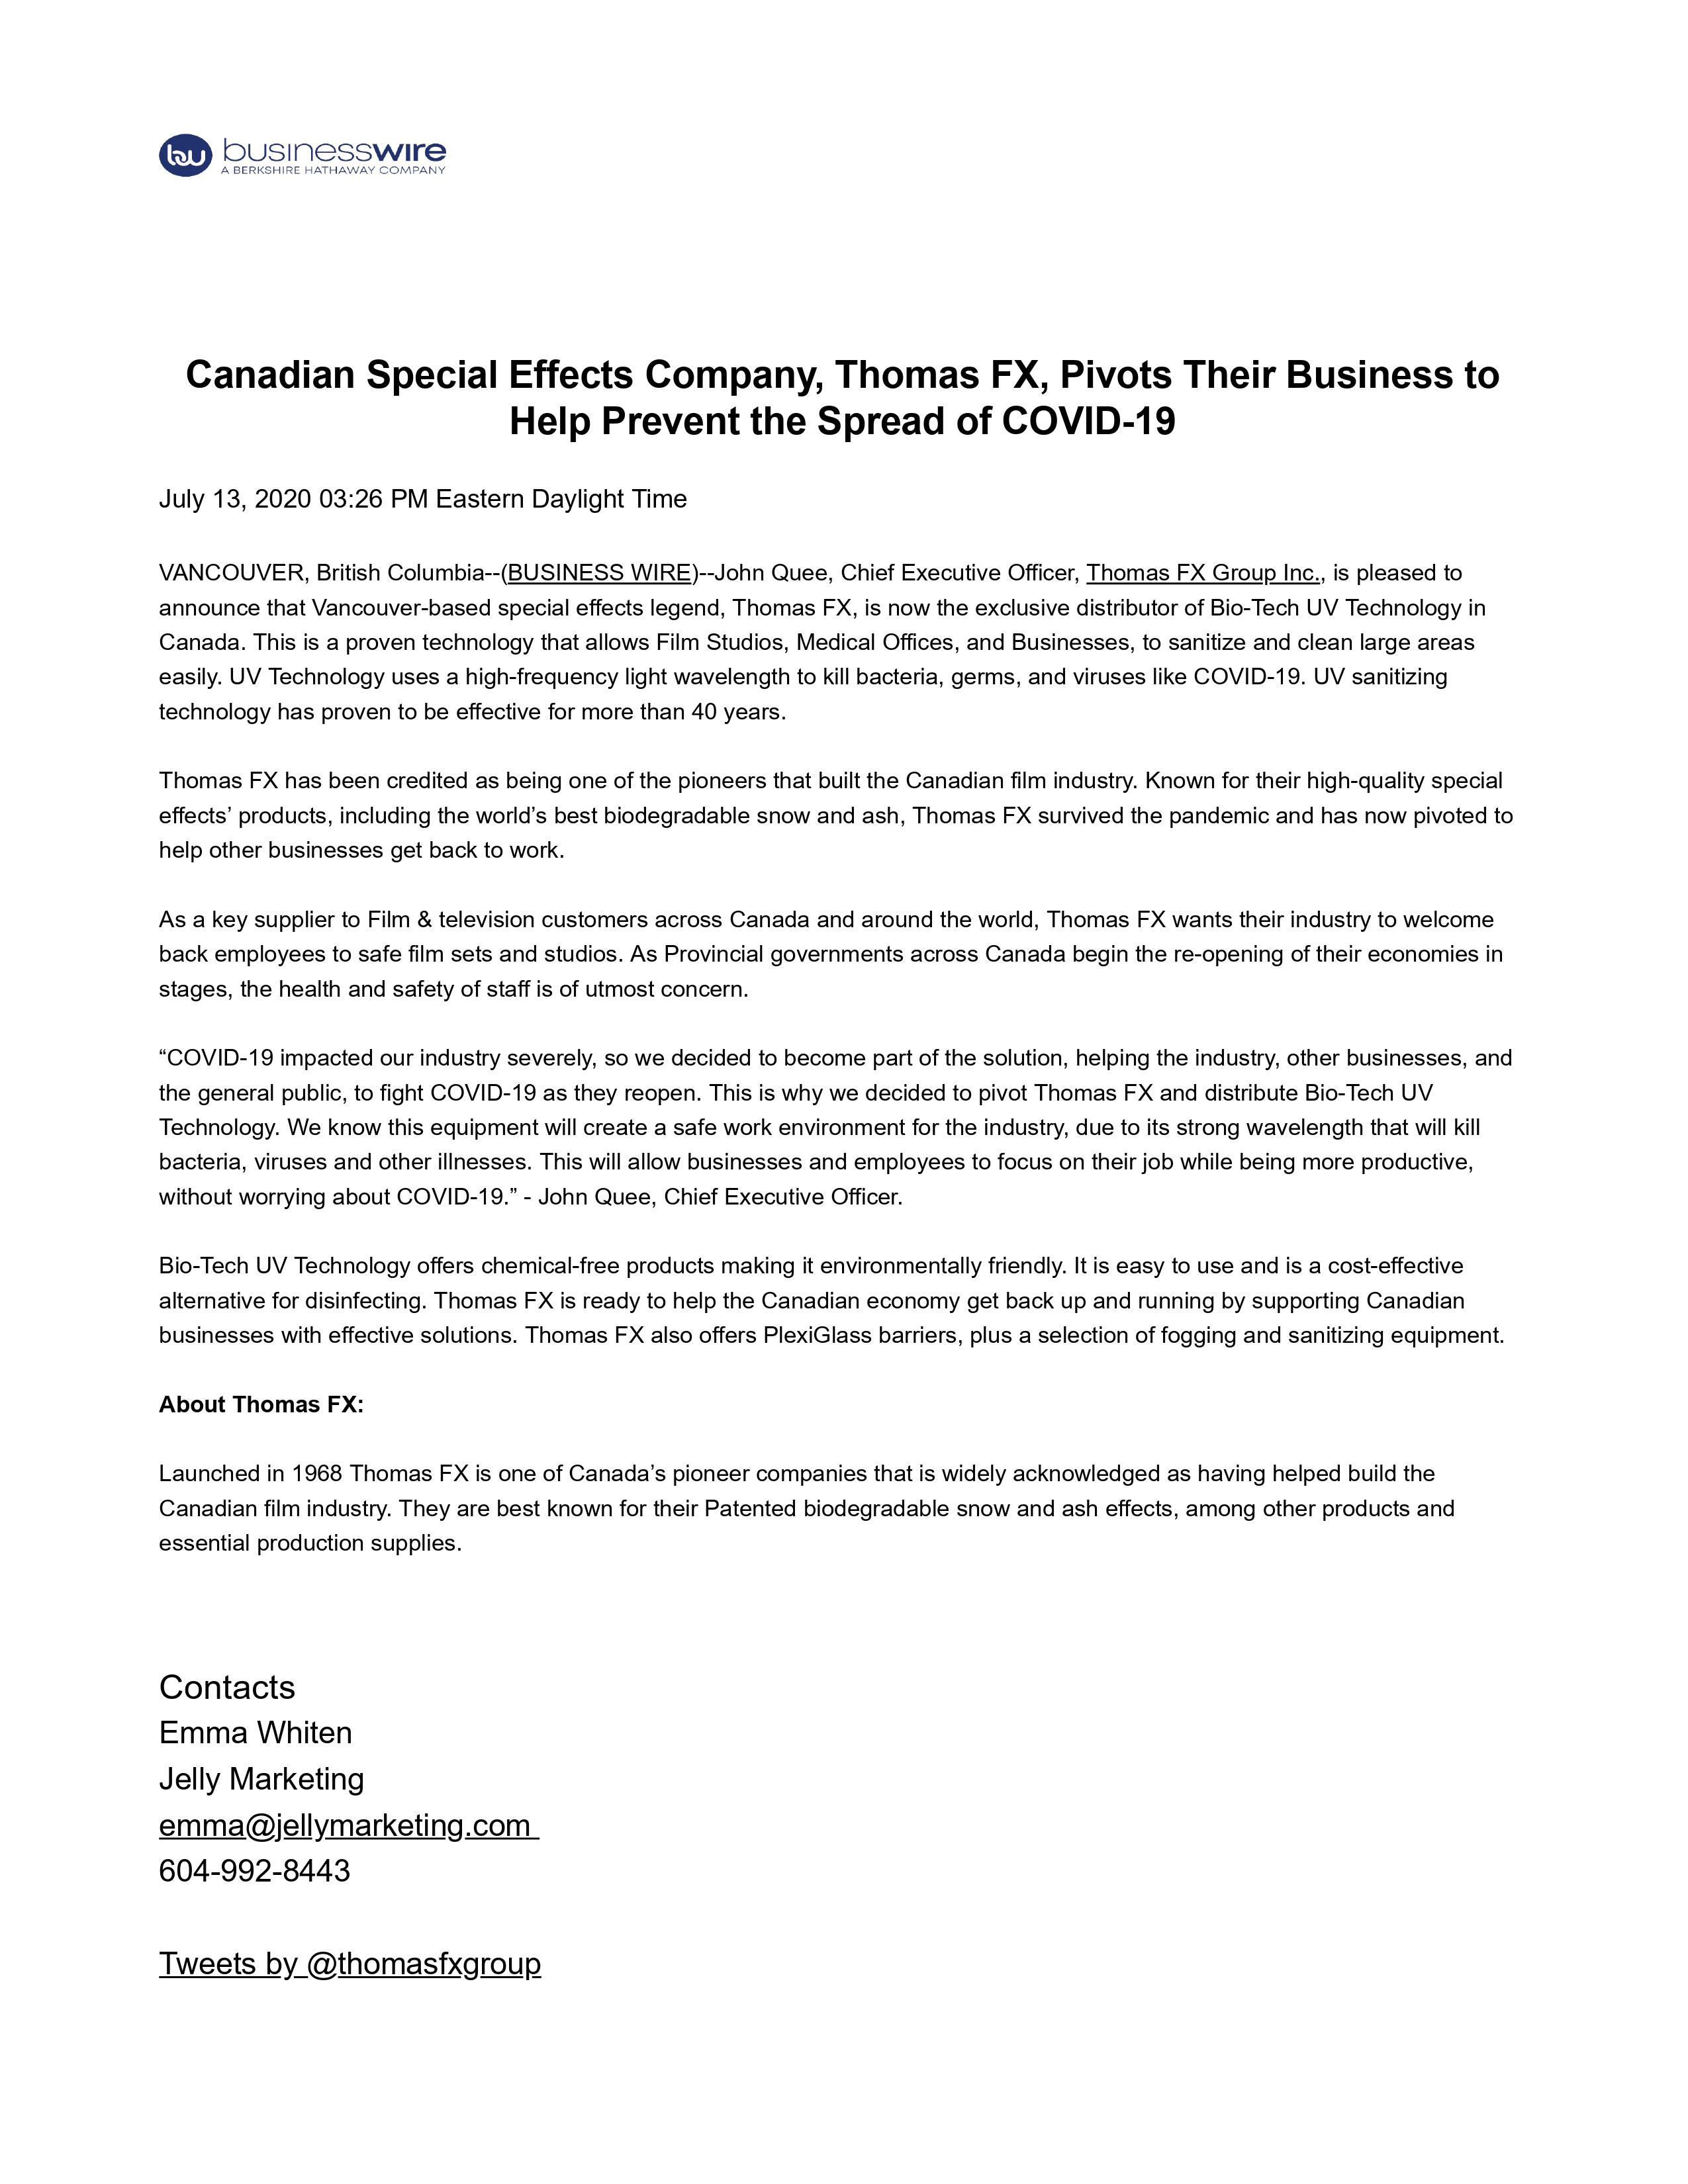 July 13 2020 Canadian Special Effects Company, Thomas FX, Pivots Their Business to Help Prevent the Spread of COVID-19